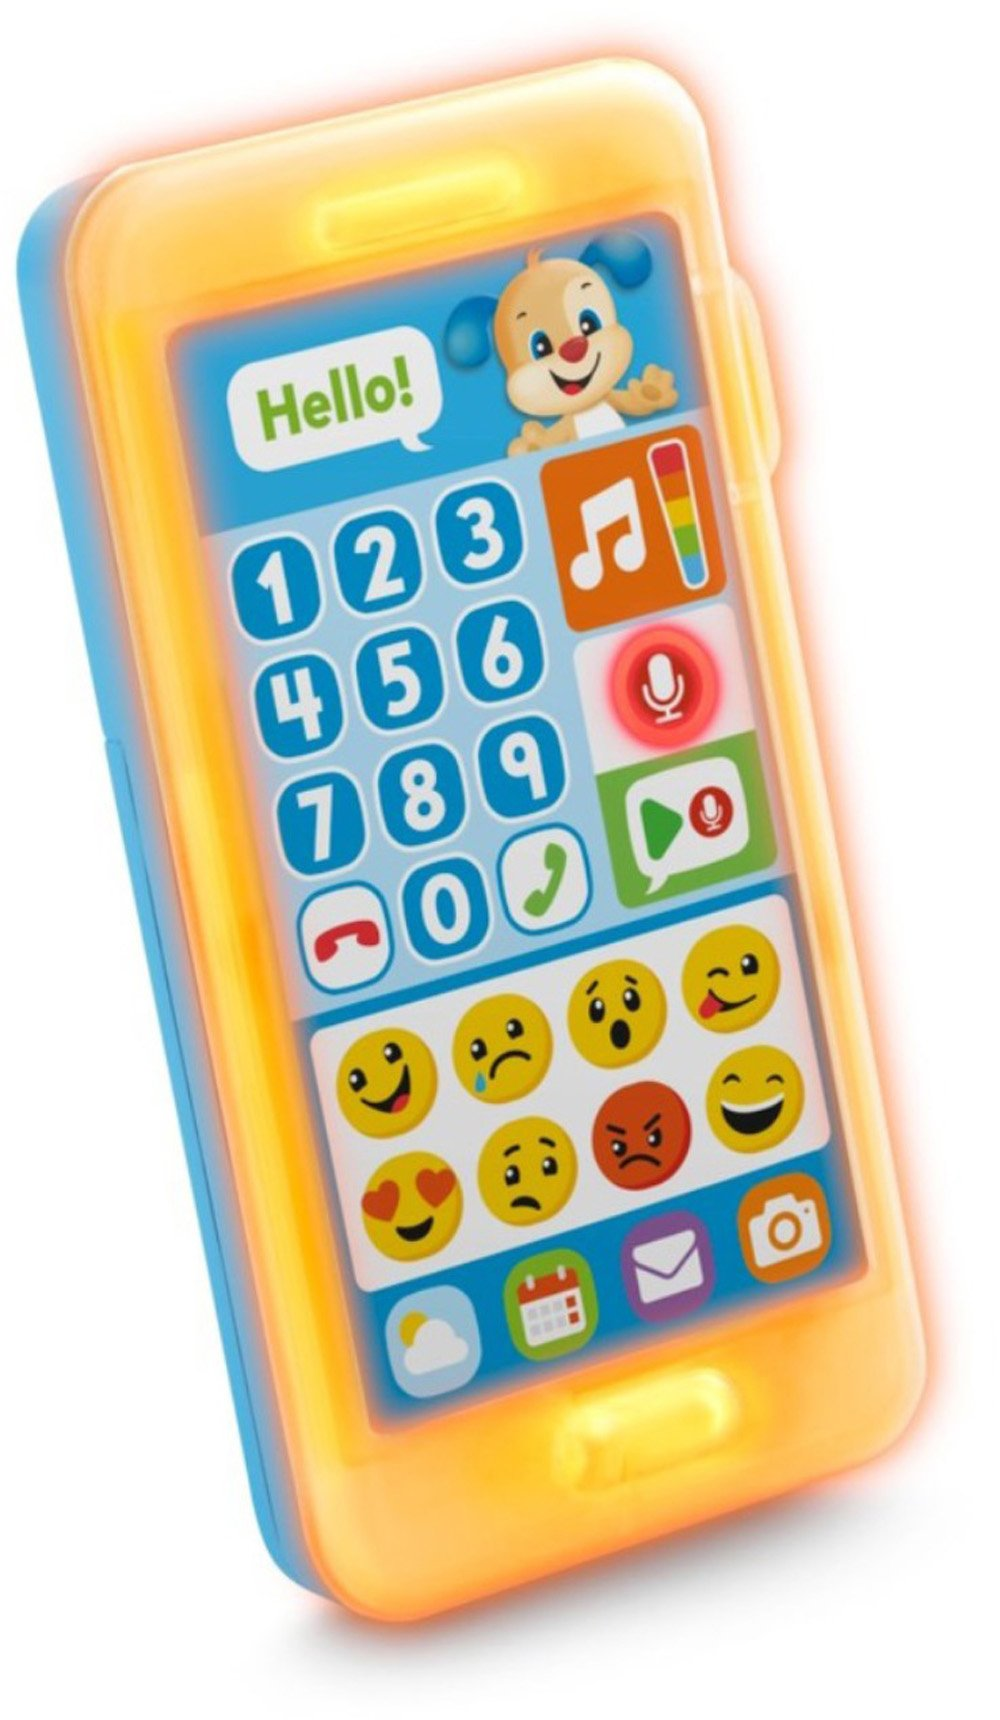 Fisher-Price Laugh & Learn Leave A Message Smart Phone, Puppy by Fisher-Price (Image #3)